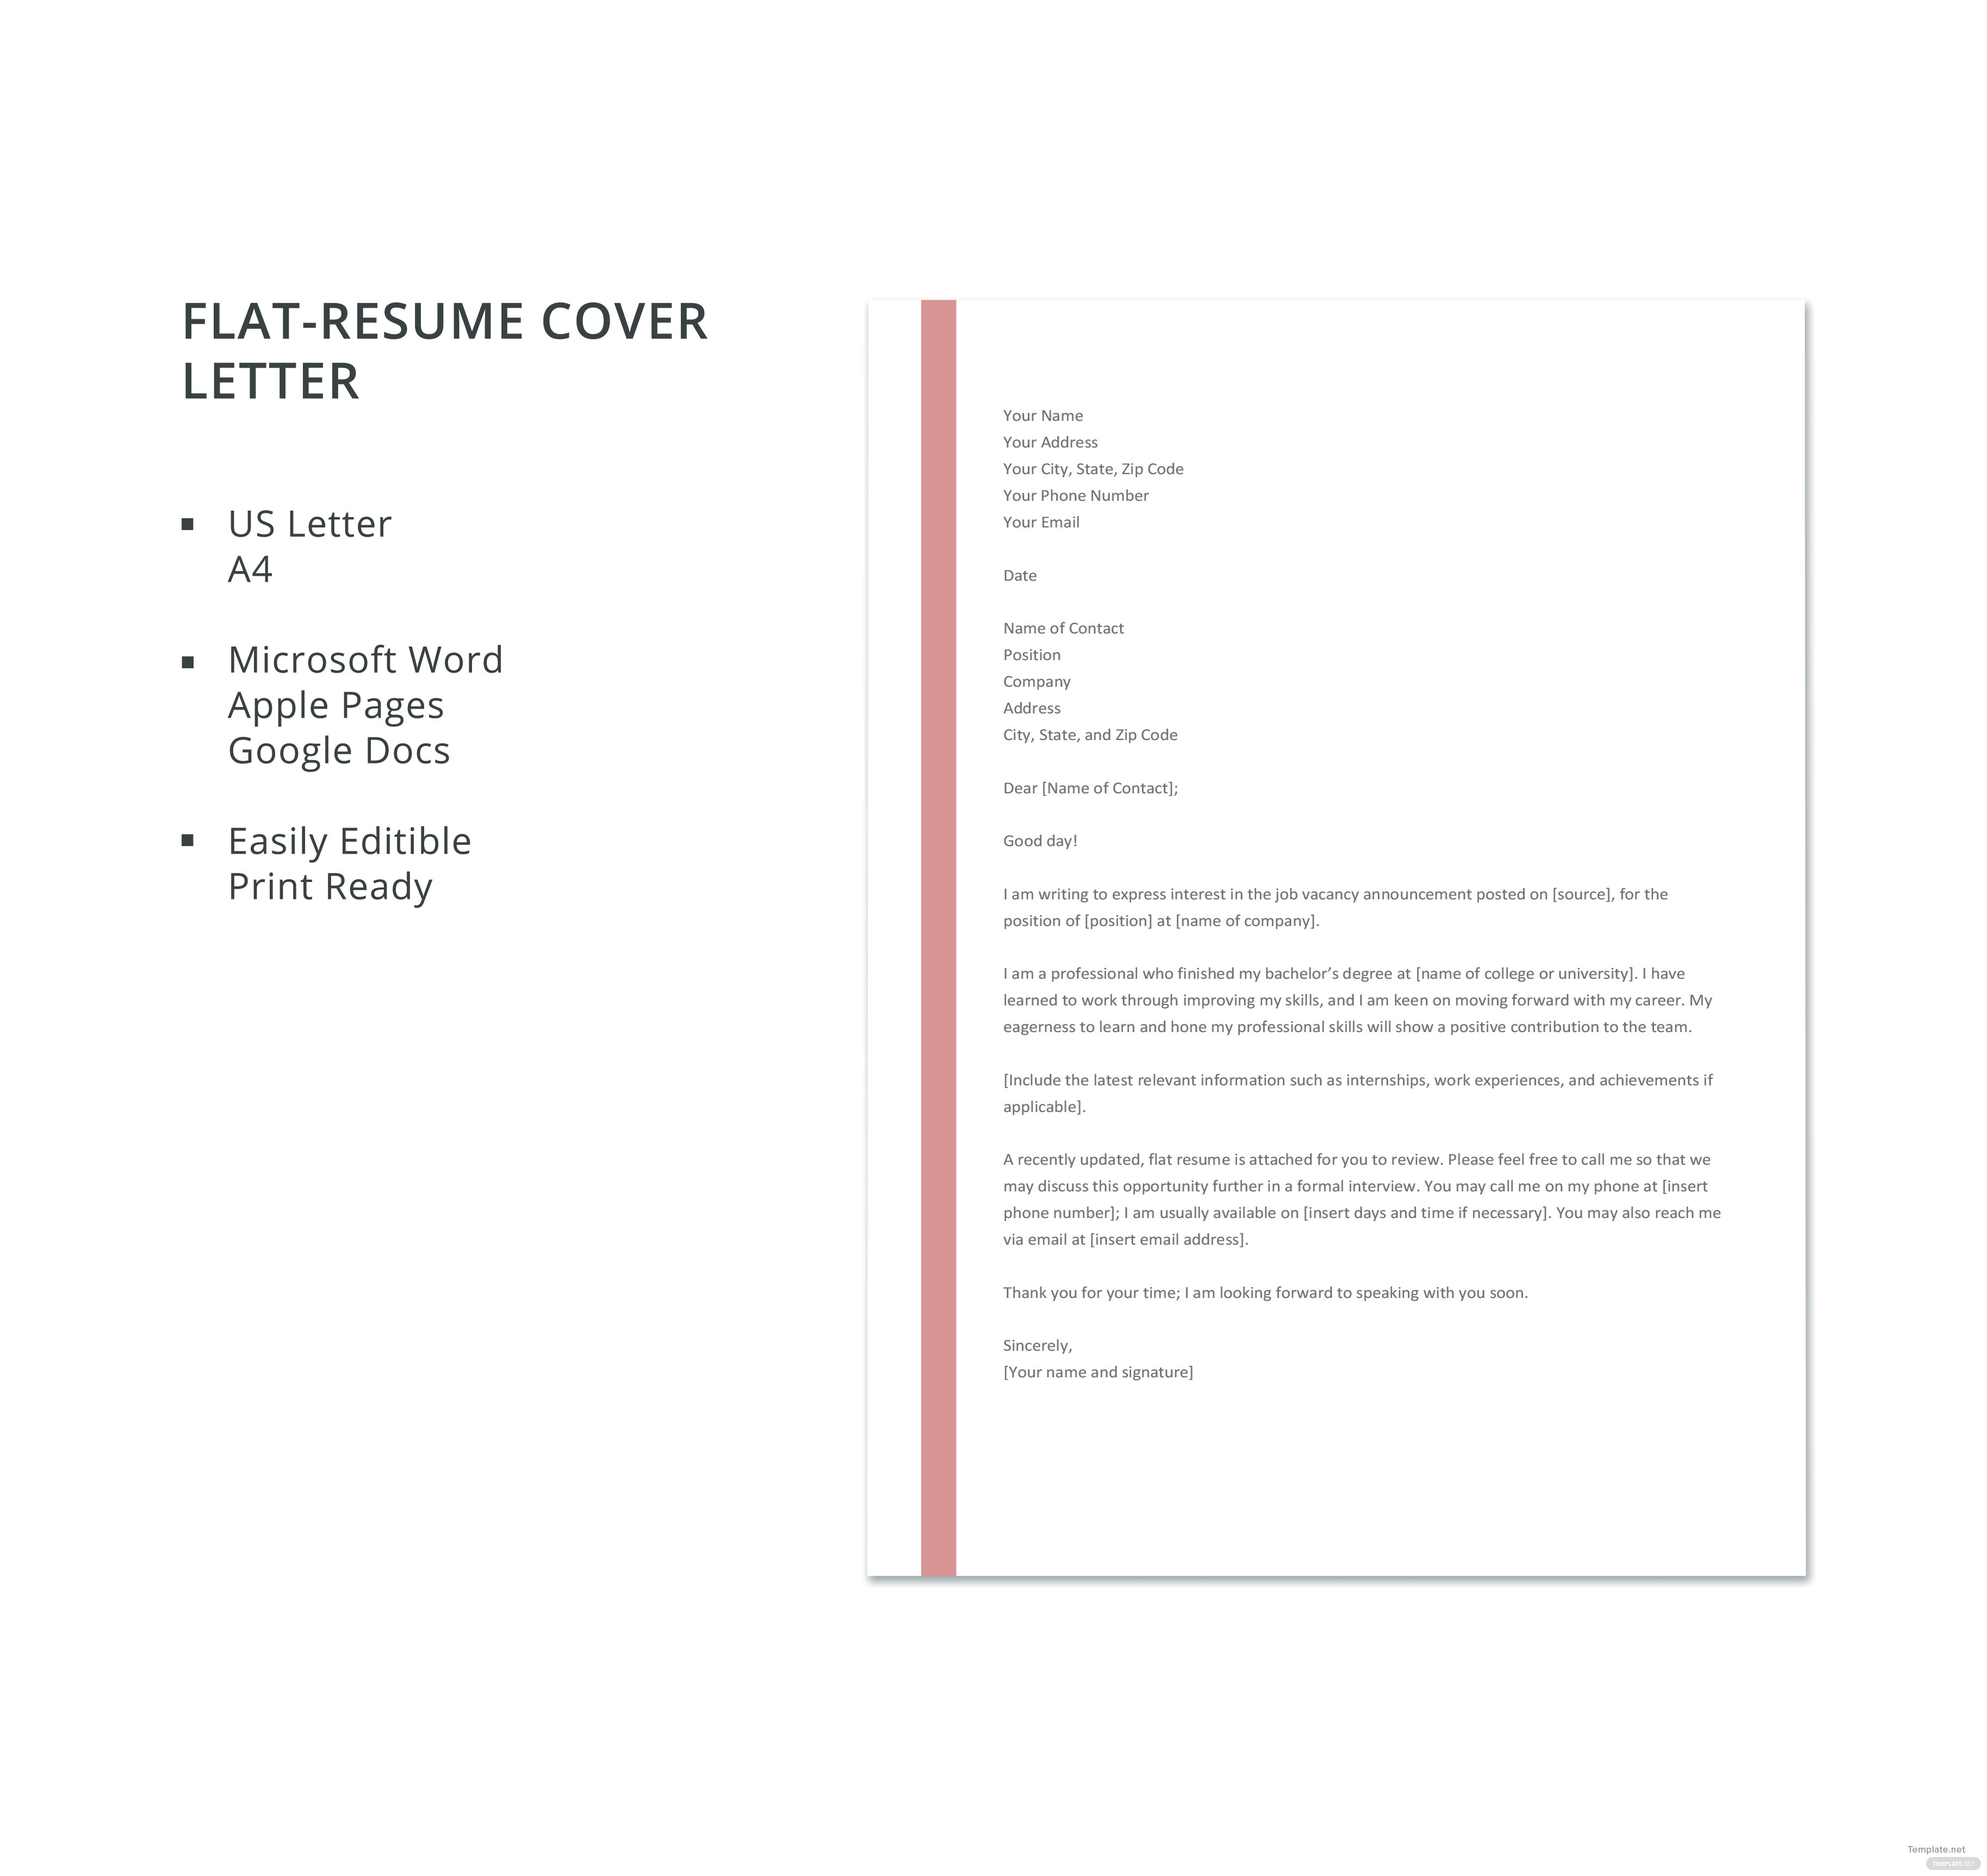 Free Flat-Resume Cover Letter Template in Microsoft Word, Apple ...